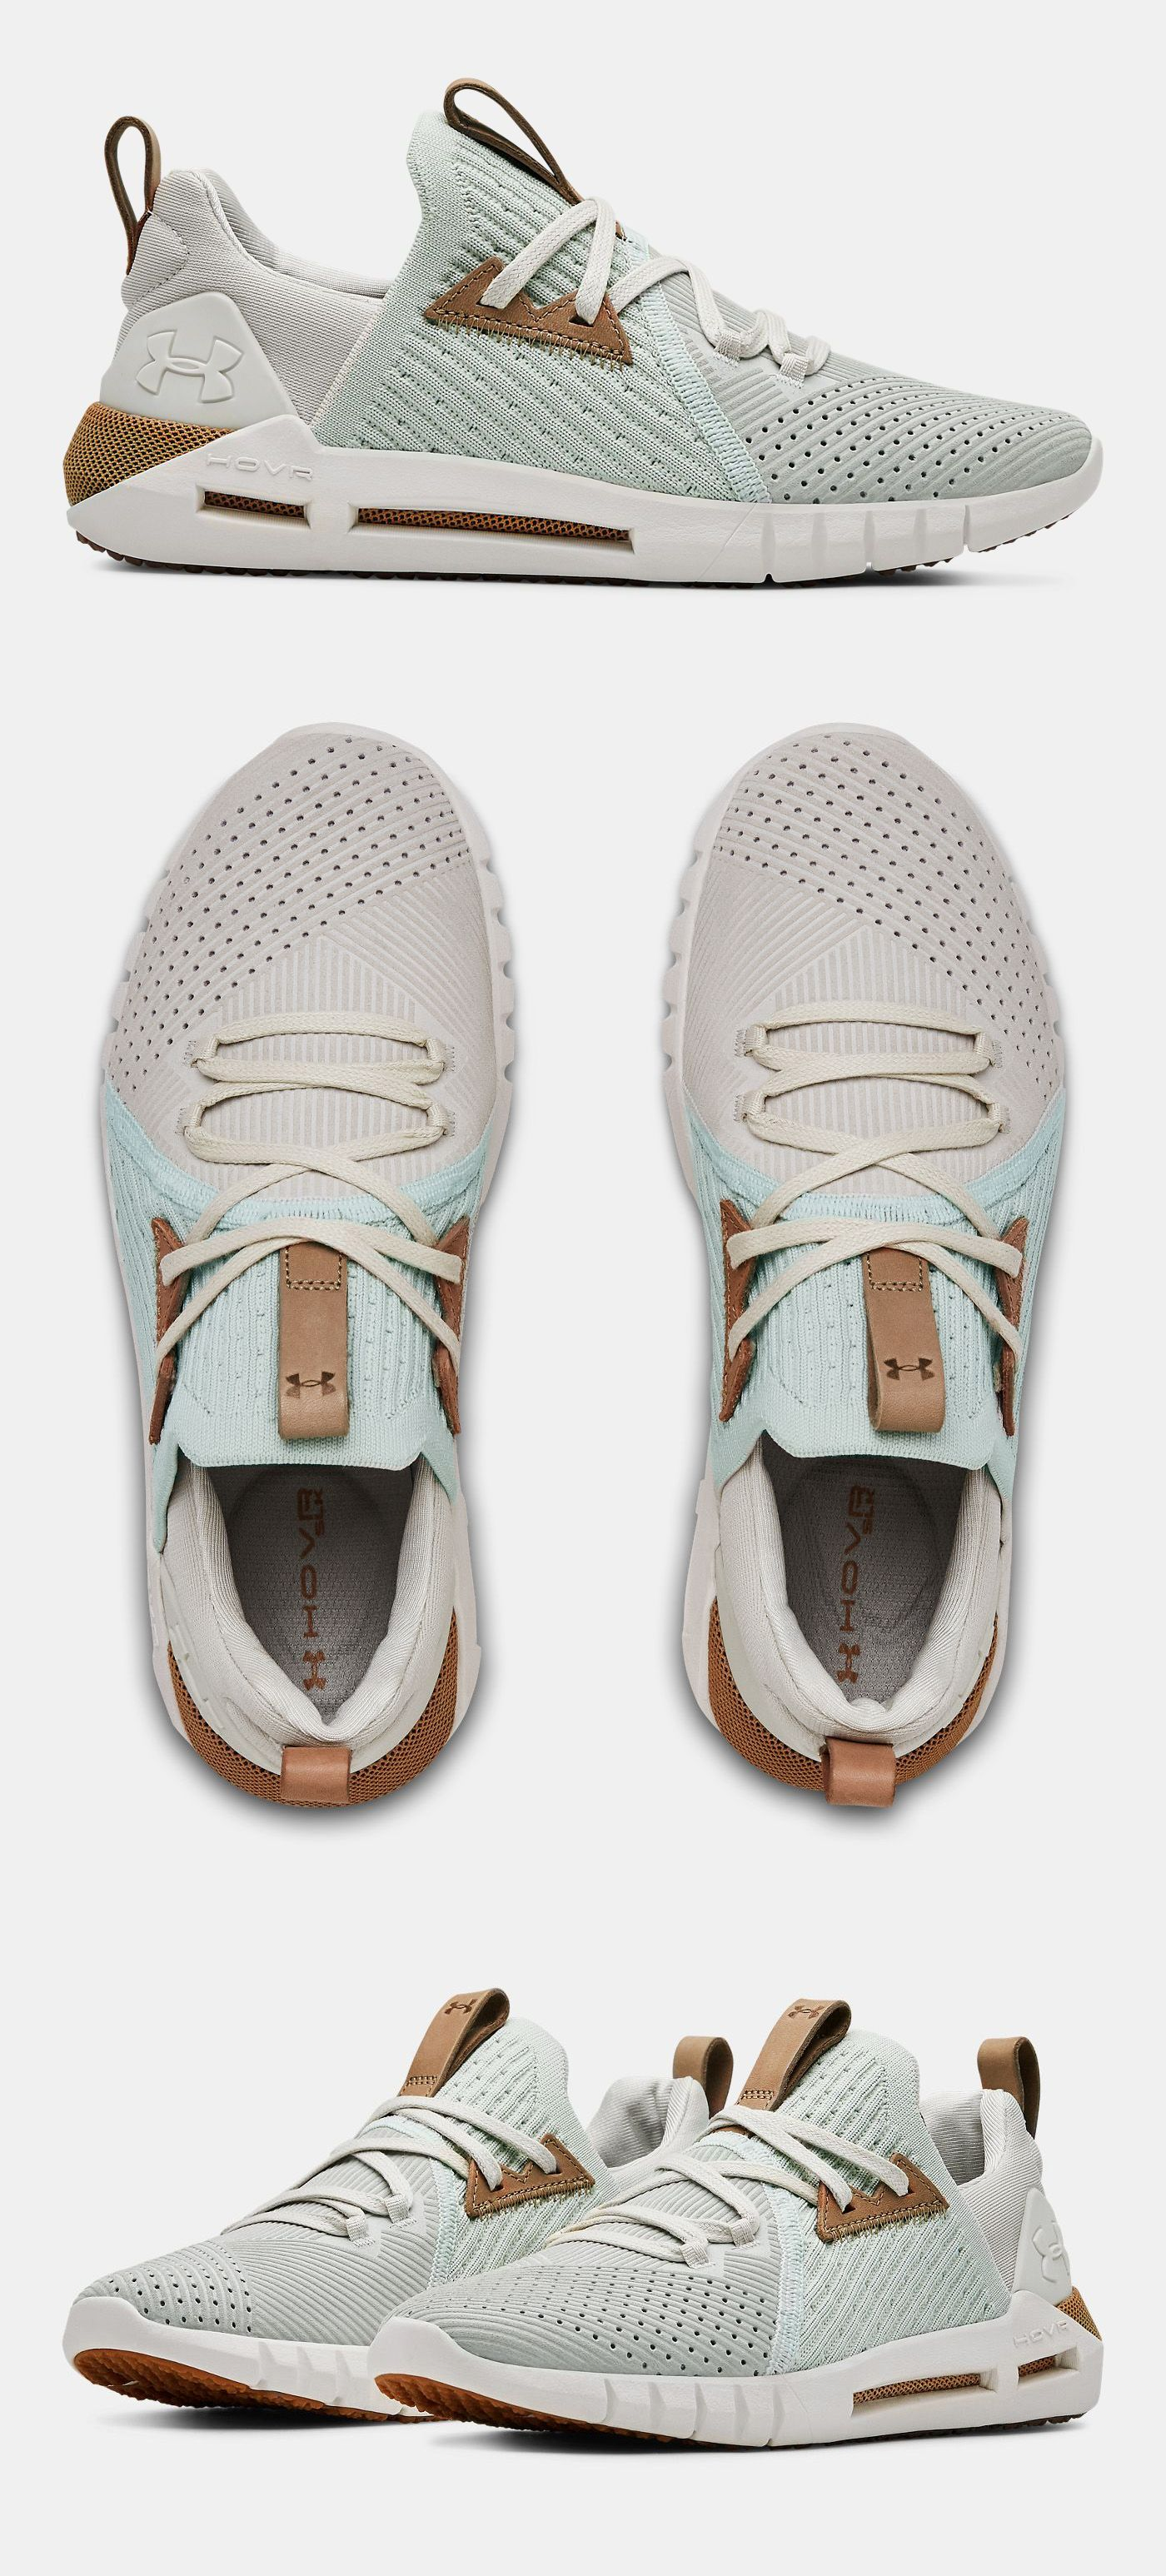 Under Armour Shoes | Casual shoes women